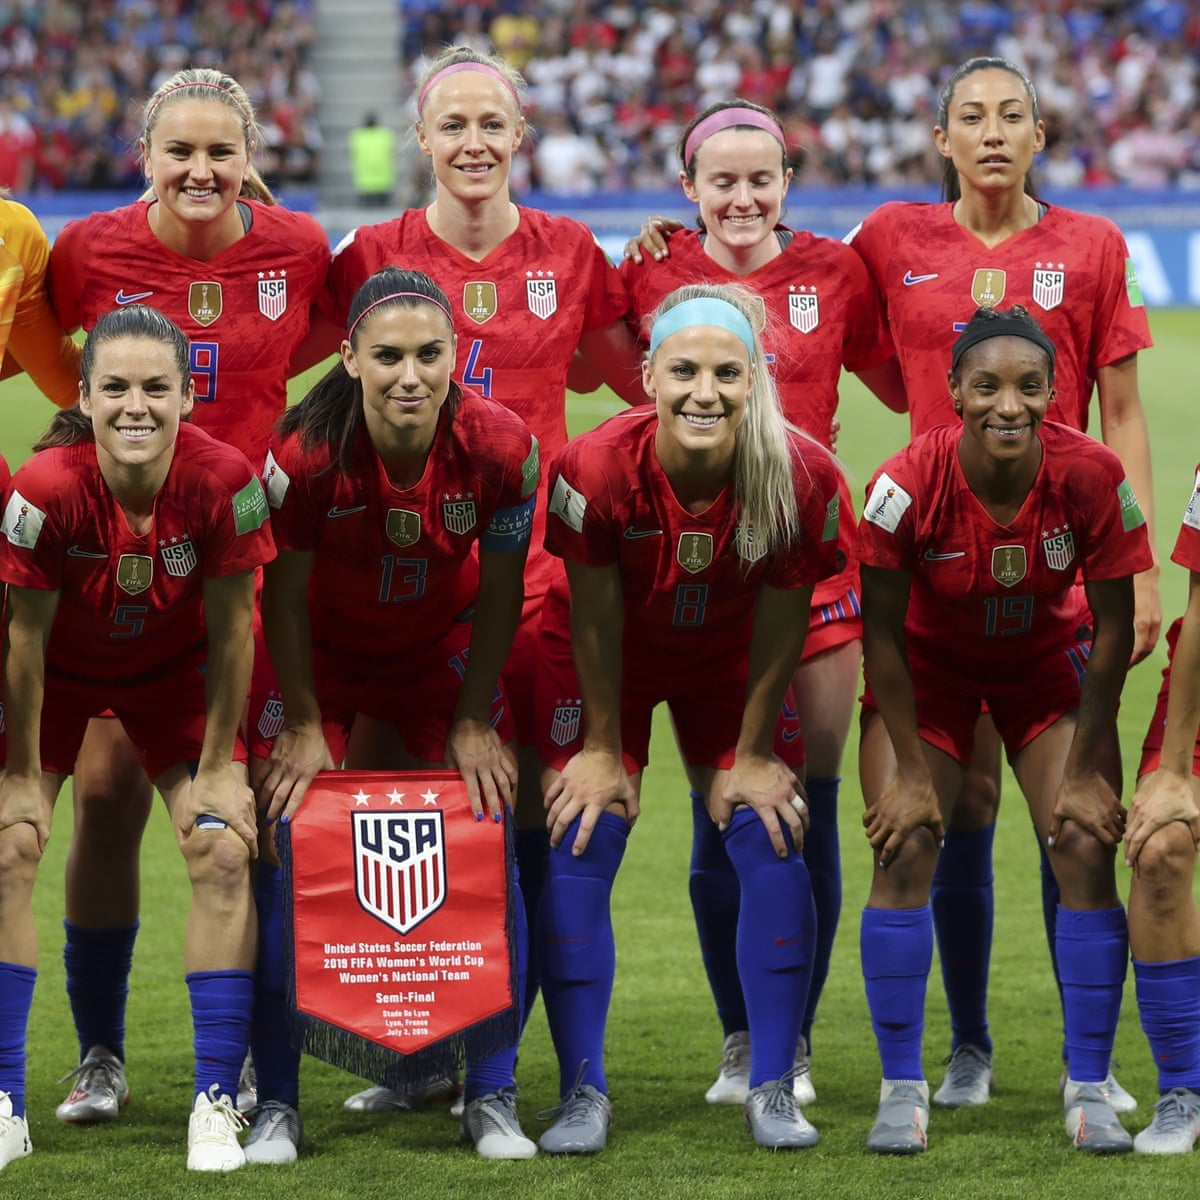 Usa S Formidable Women S Soccer Team Is No Accident It S A Product Of Public Policy Moira Donegan The Guardian